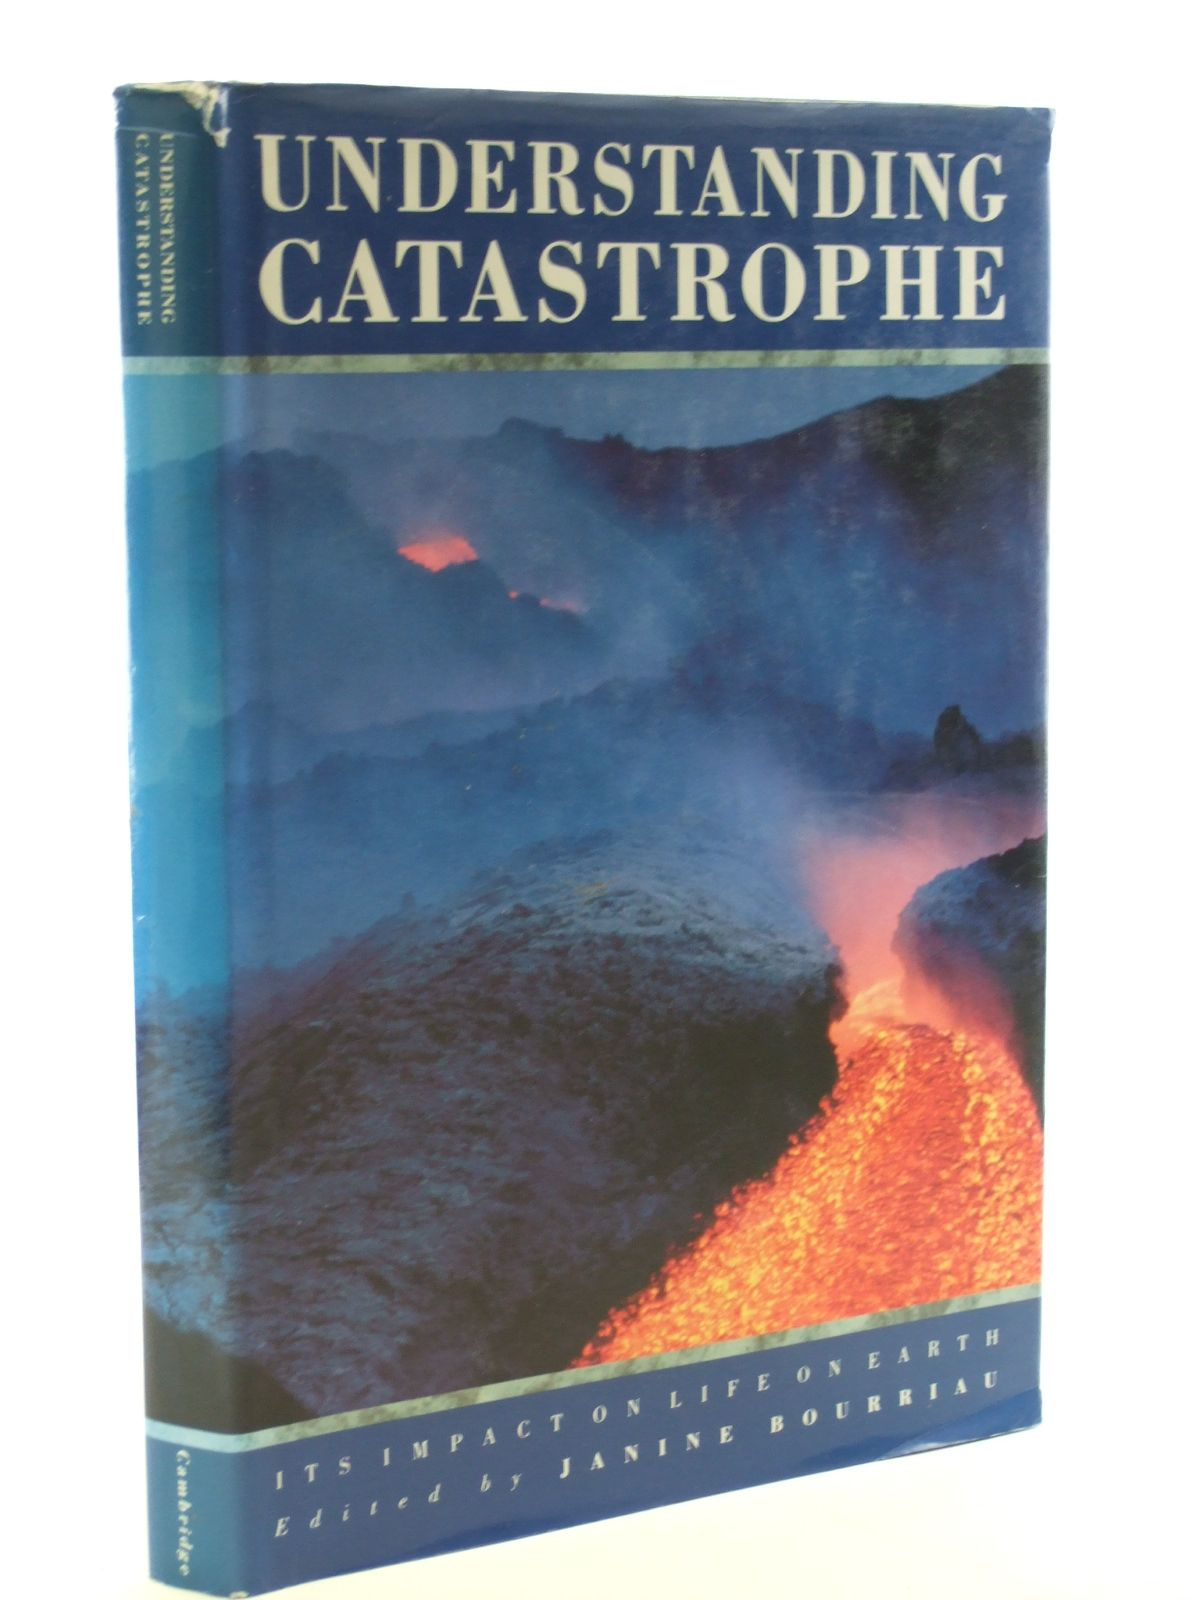 Photo of UNDERSTANDING CATASTROPHE written by Bourriau, Janine published by Cambridge University Press (STOCK CODE: 1602896)  for sale by Stella & Rose's Books